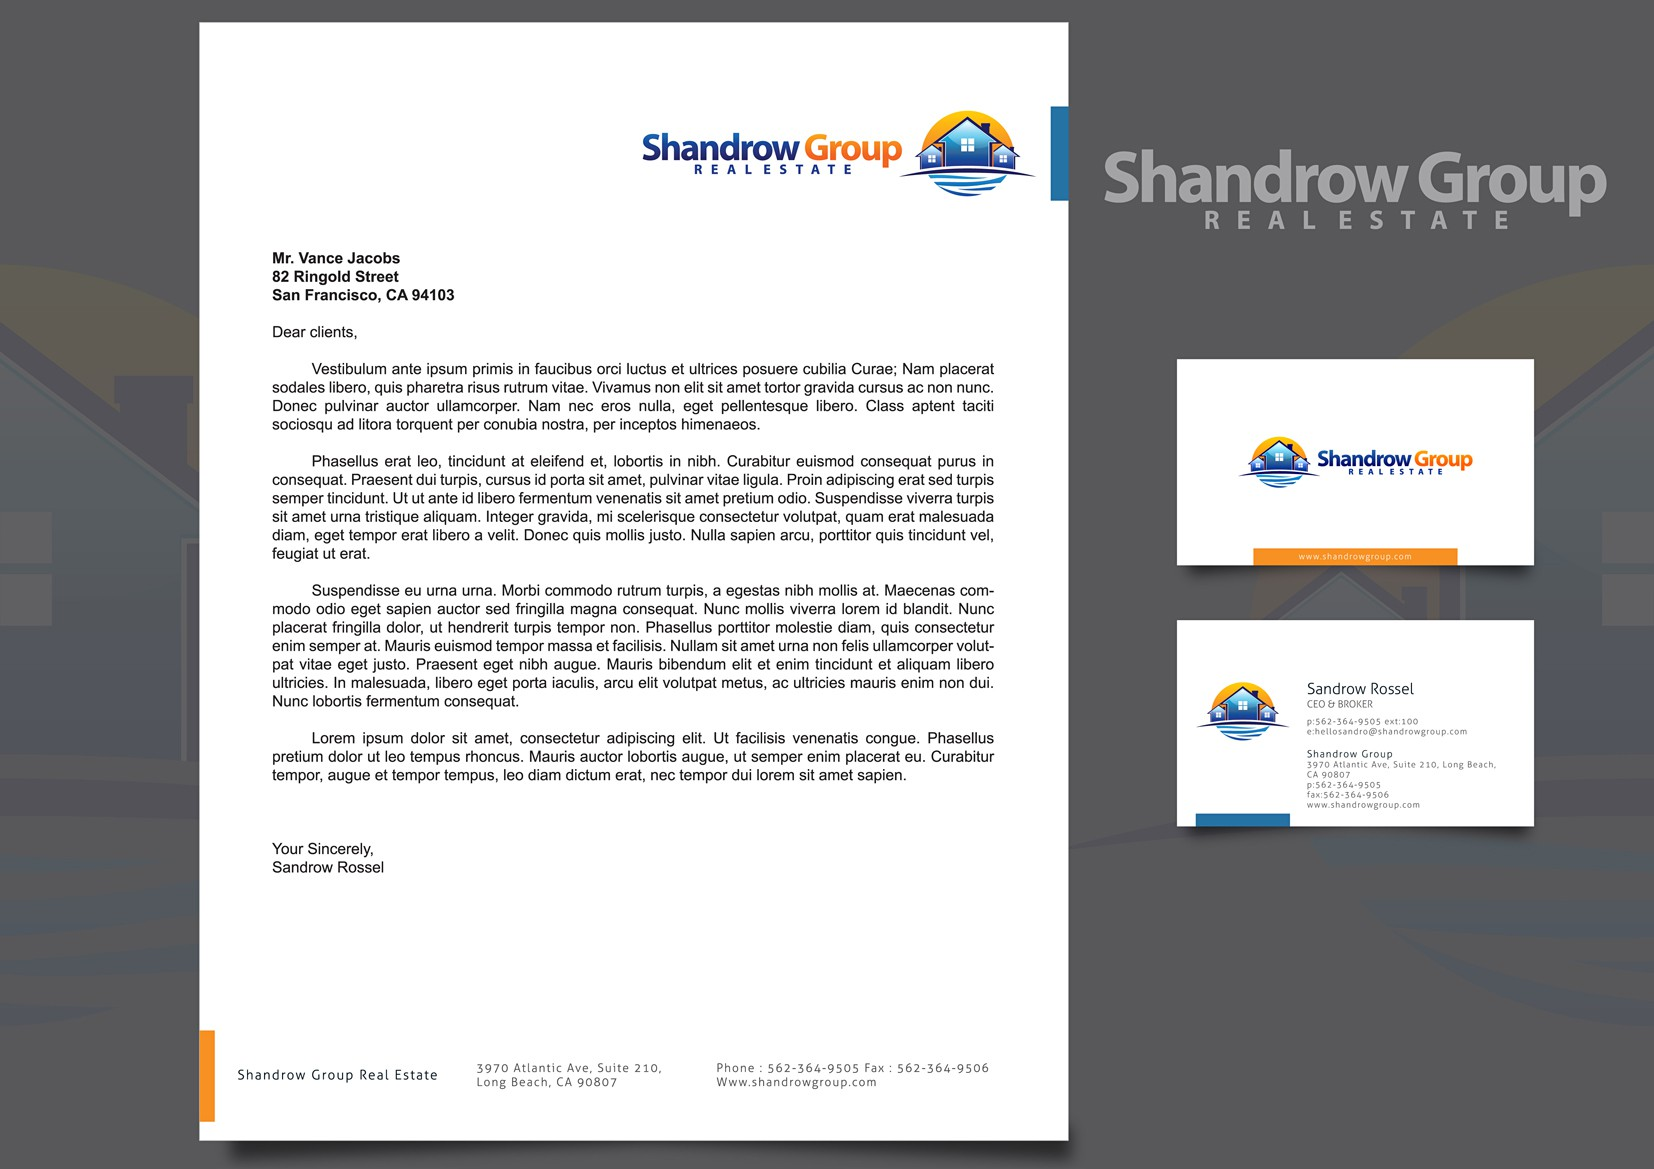 Shandrow Group needs business cards, return address label and letter head (logo already created)